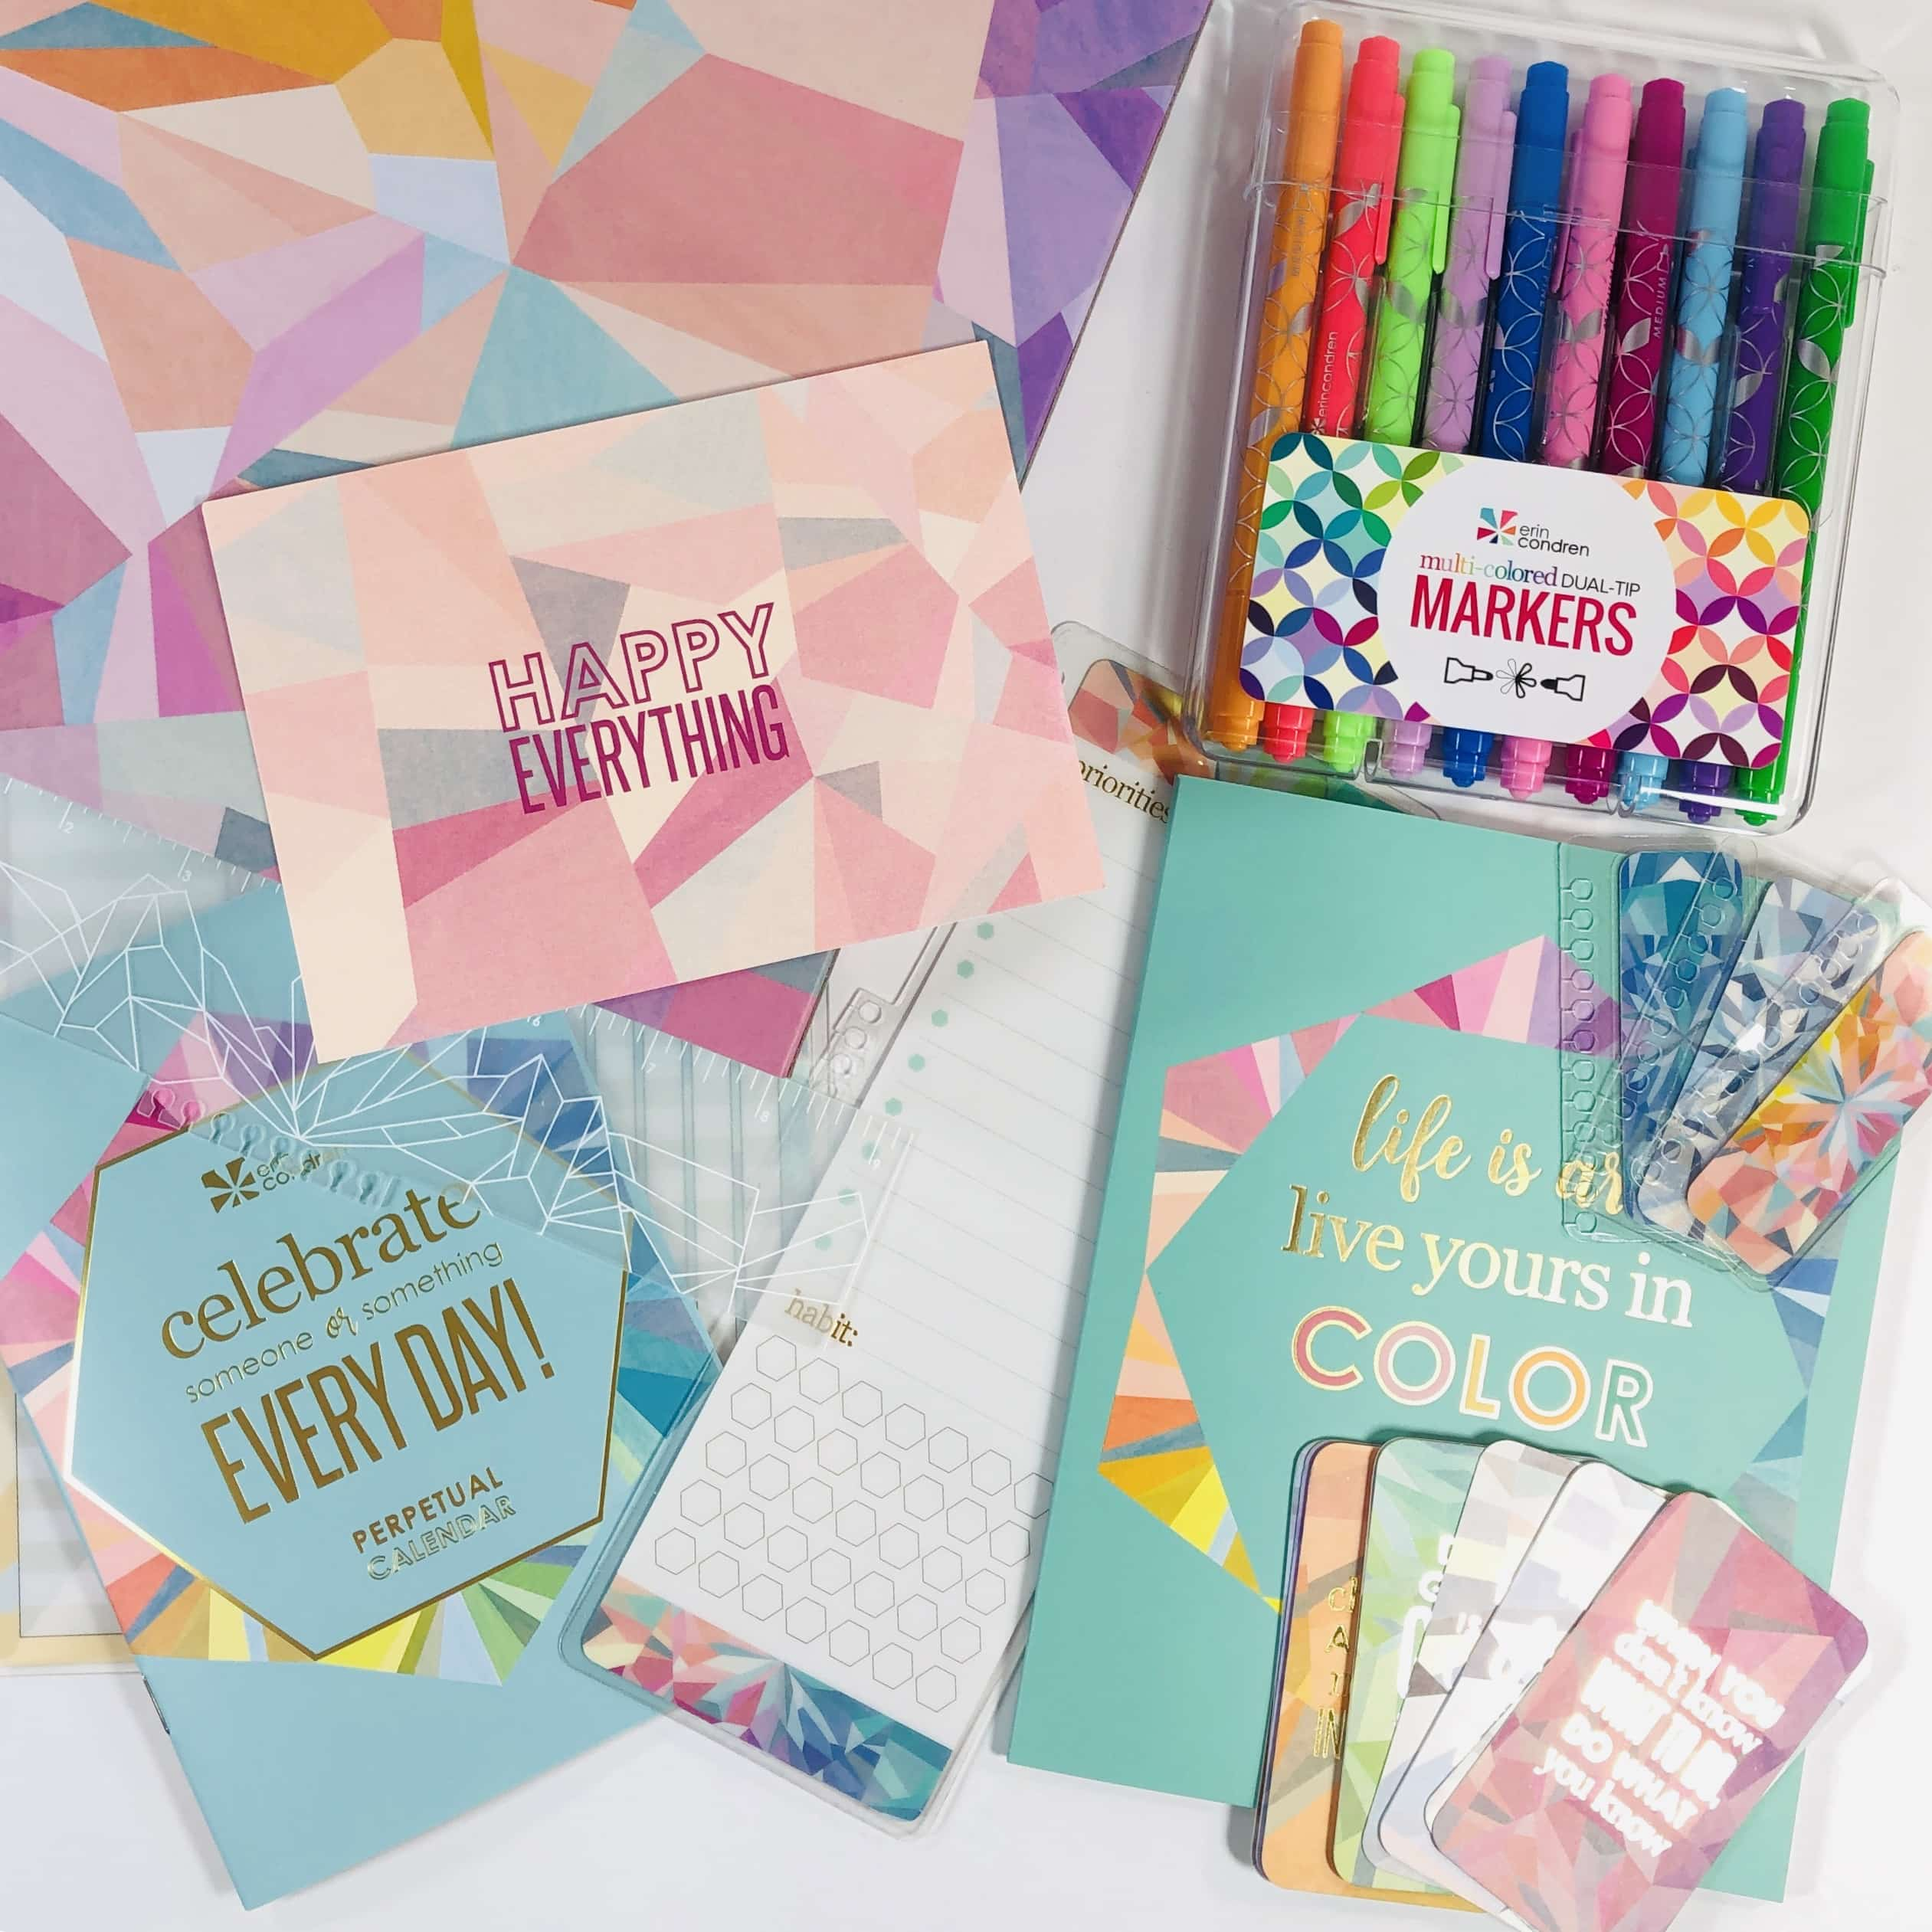 Erin Condren New Product Launch Review May 2019 - hello subscription